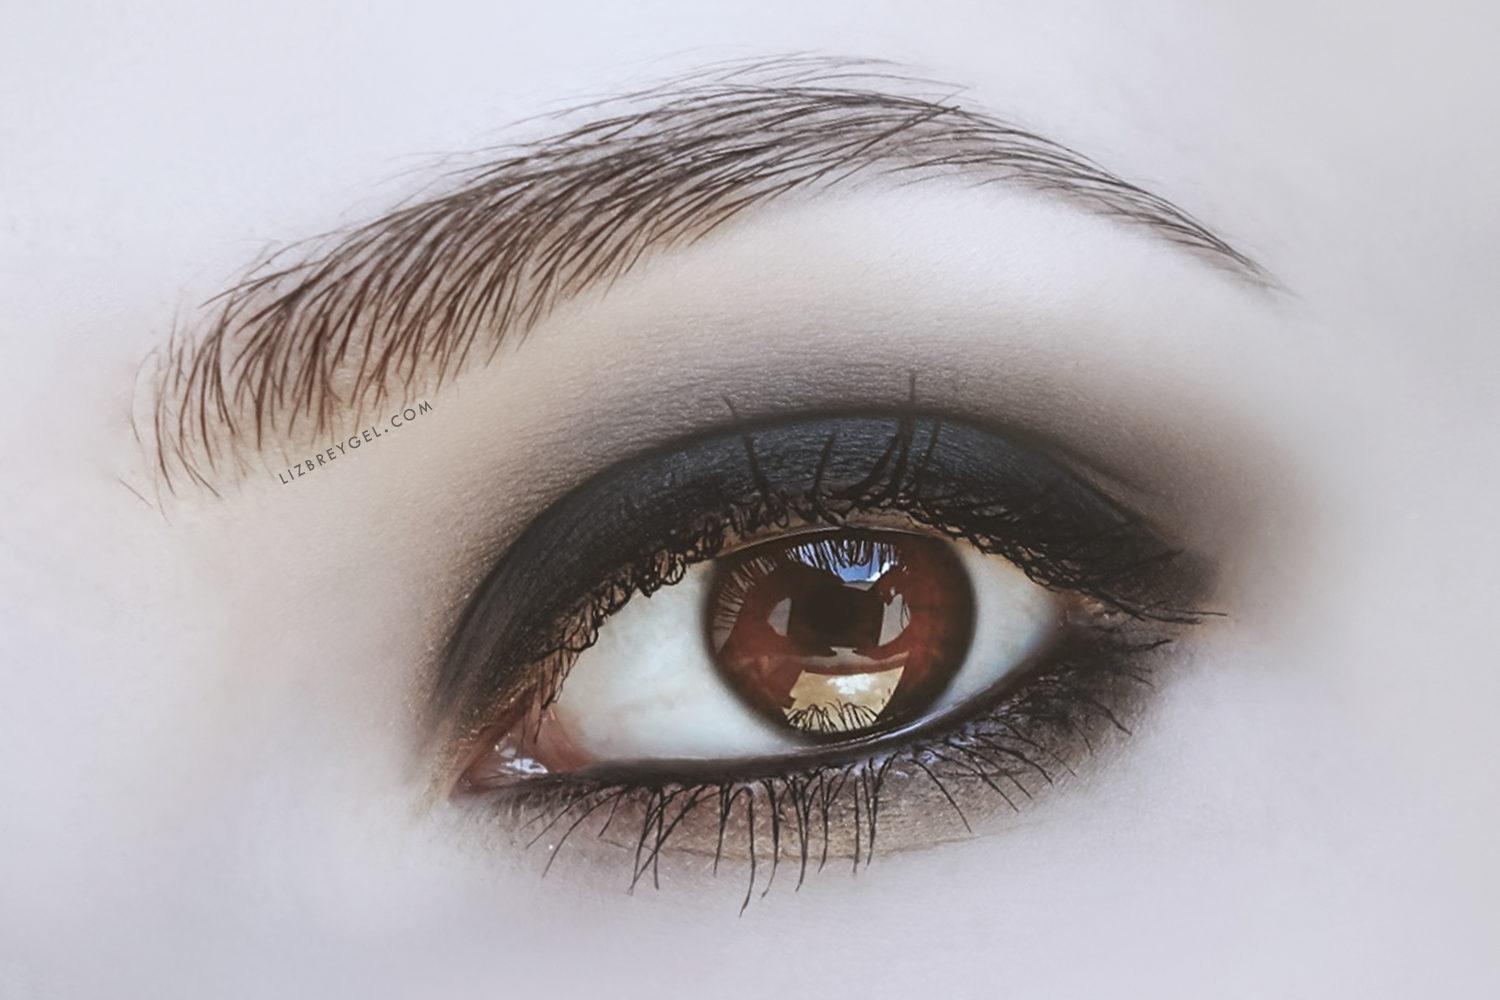 a close-up picture of an eye with smokey eye makeup look